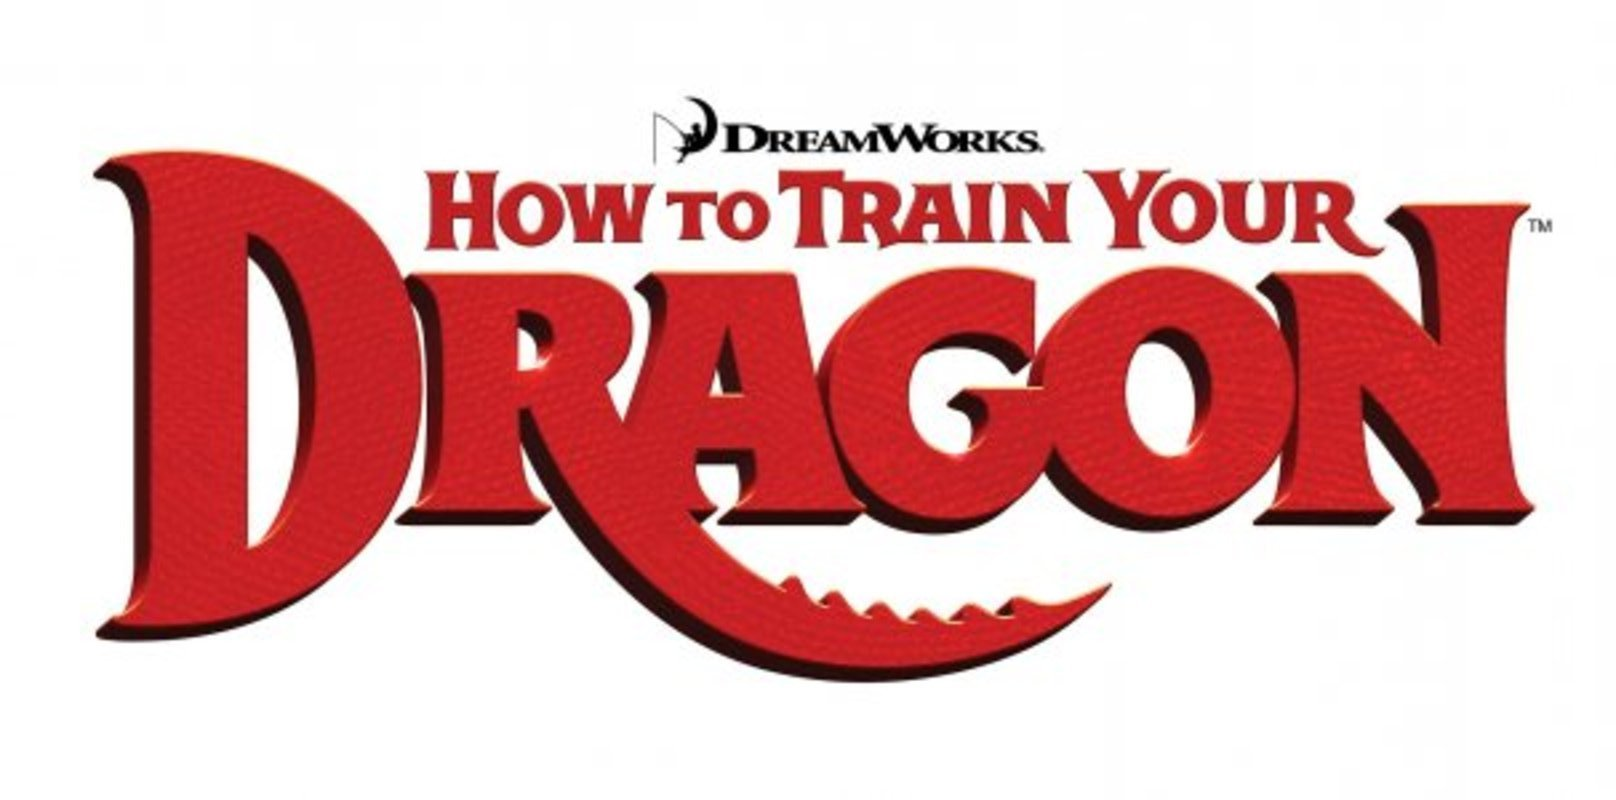 How To Train Your Dragon 2 Hiccup And Toothless Poster 301 Moved Permanently